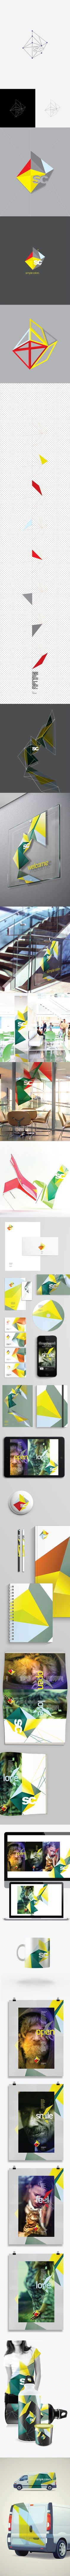 Simple Colors by Graphic Man, via Behance